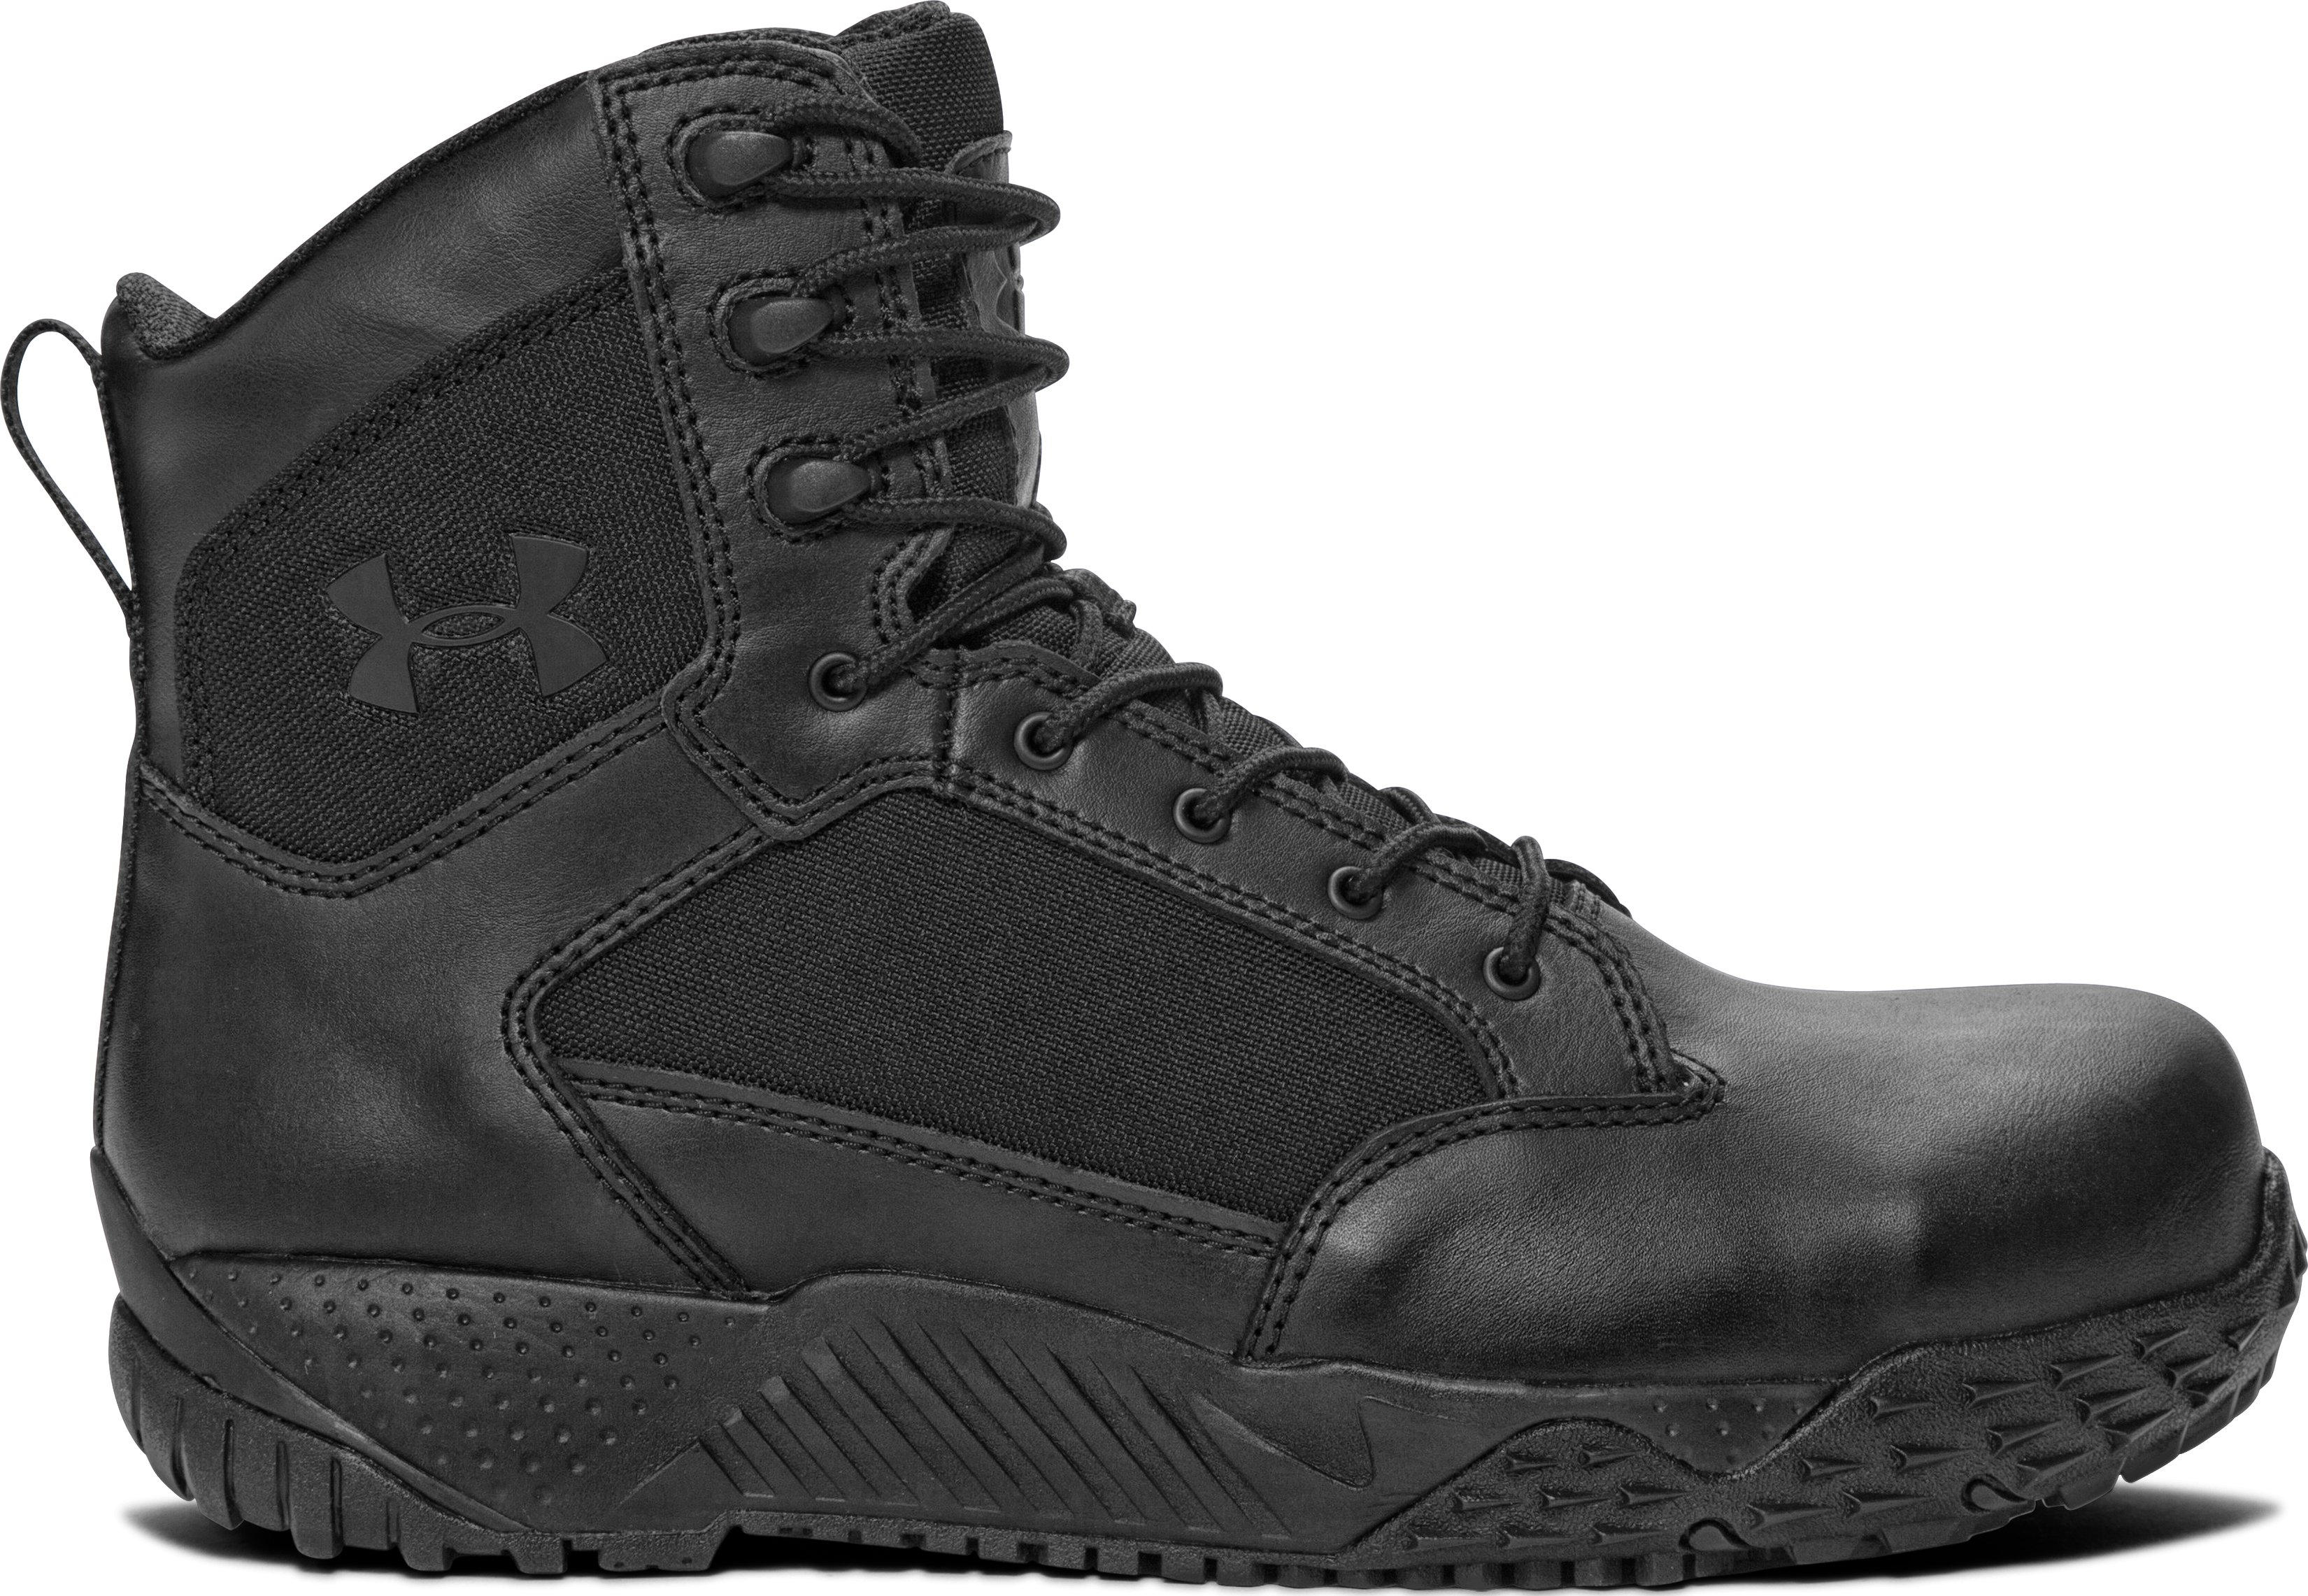 protection boots Men's UA Stellar Protect Tactical Boots Good support and <strong>protection</strong>.